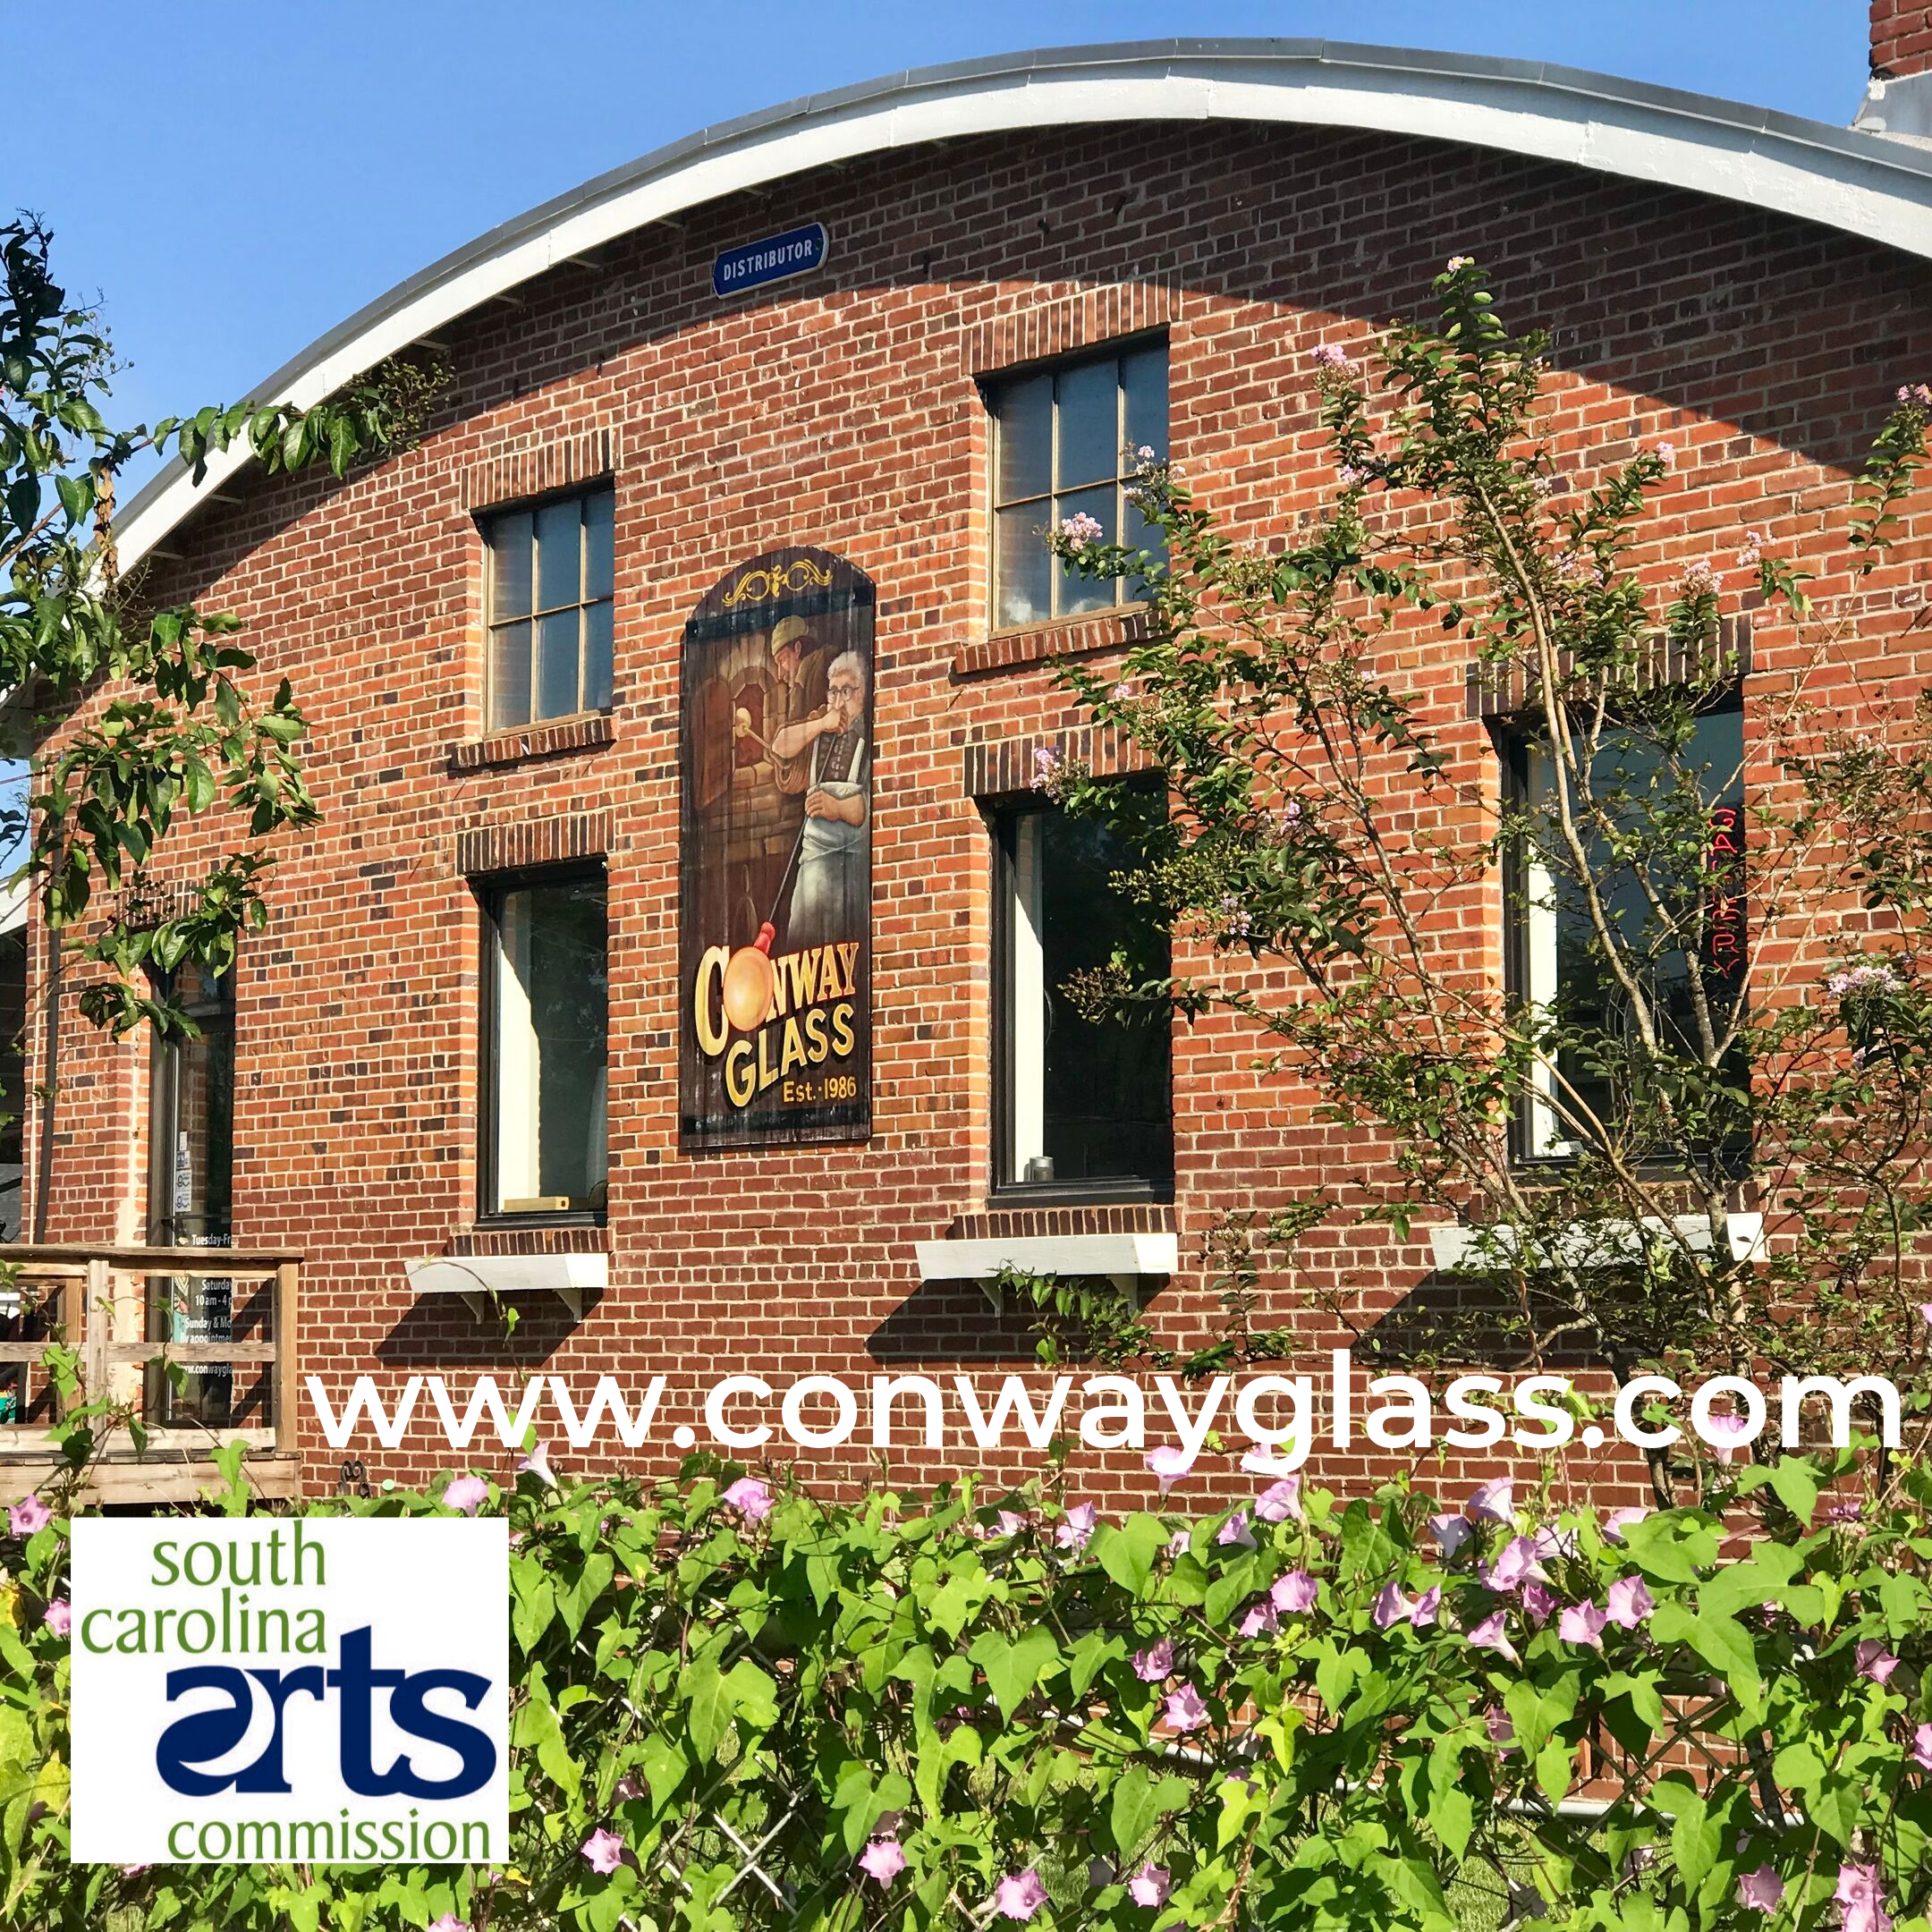 708 12th Ave. Conway, SC 29526  www.conwayglass.com